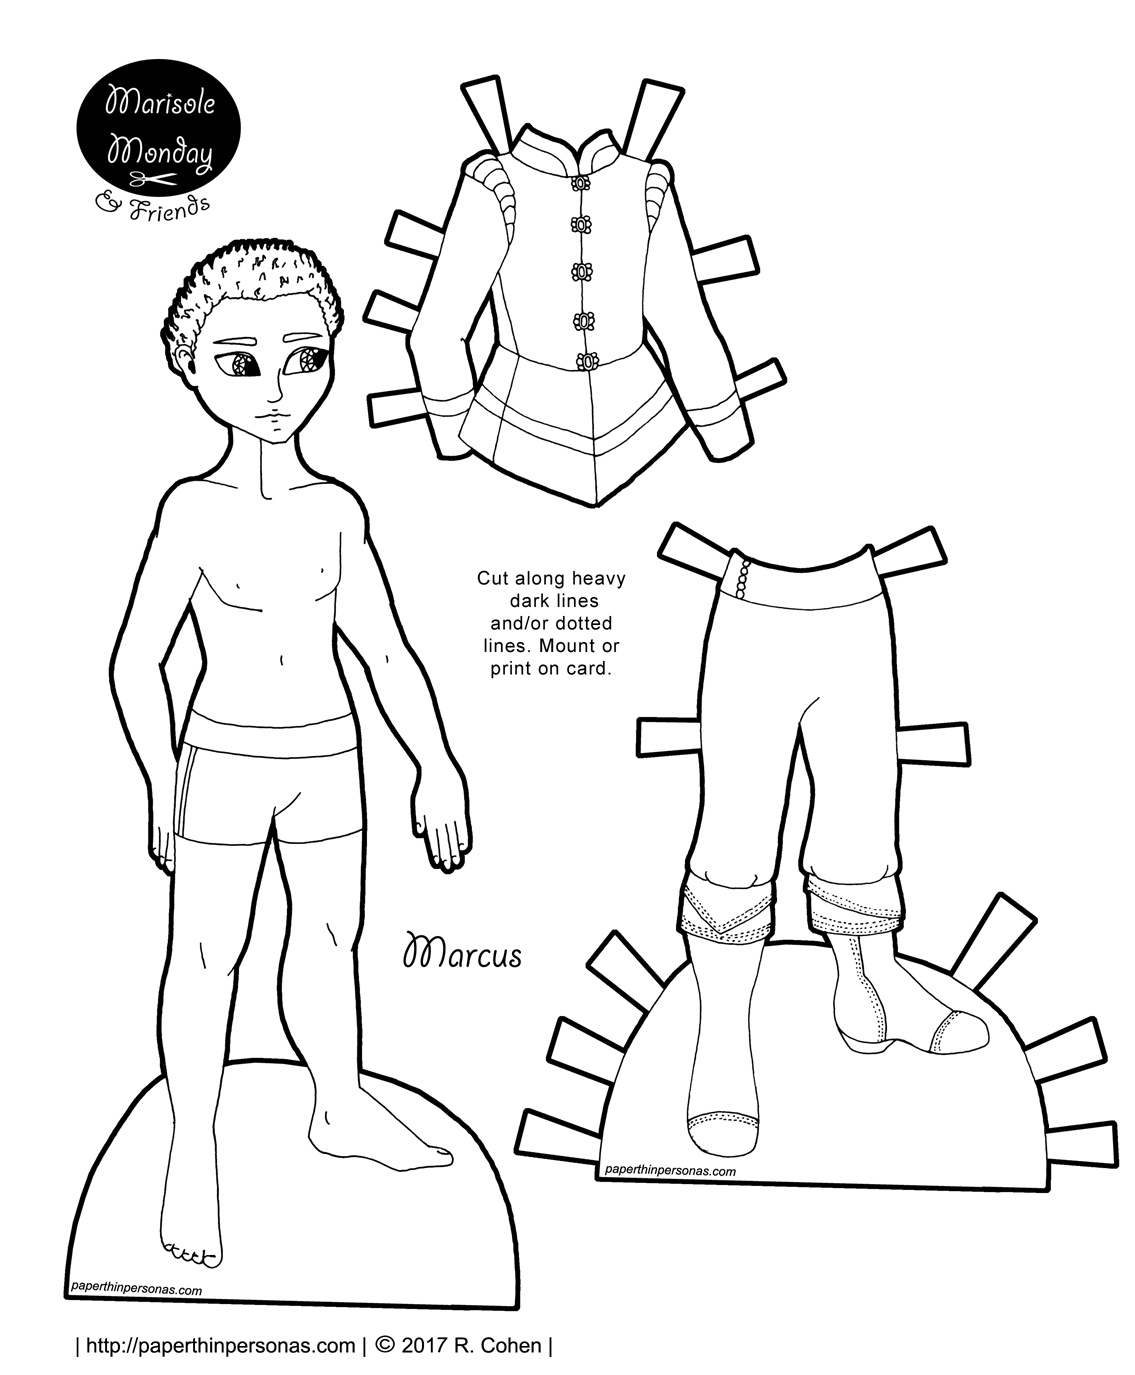 A Free Printable African-American Fairy Tale Prince Paper Doll - Free Printable Paper Dolls